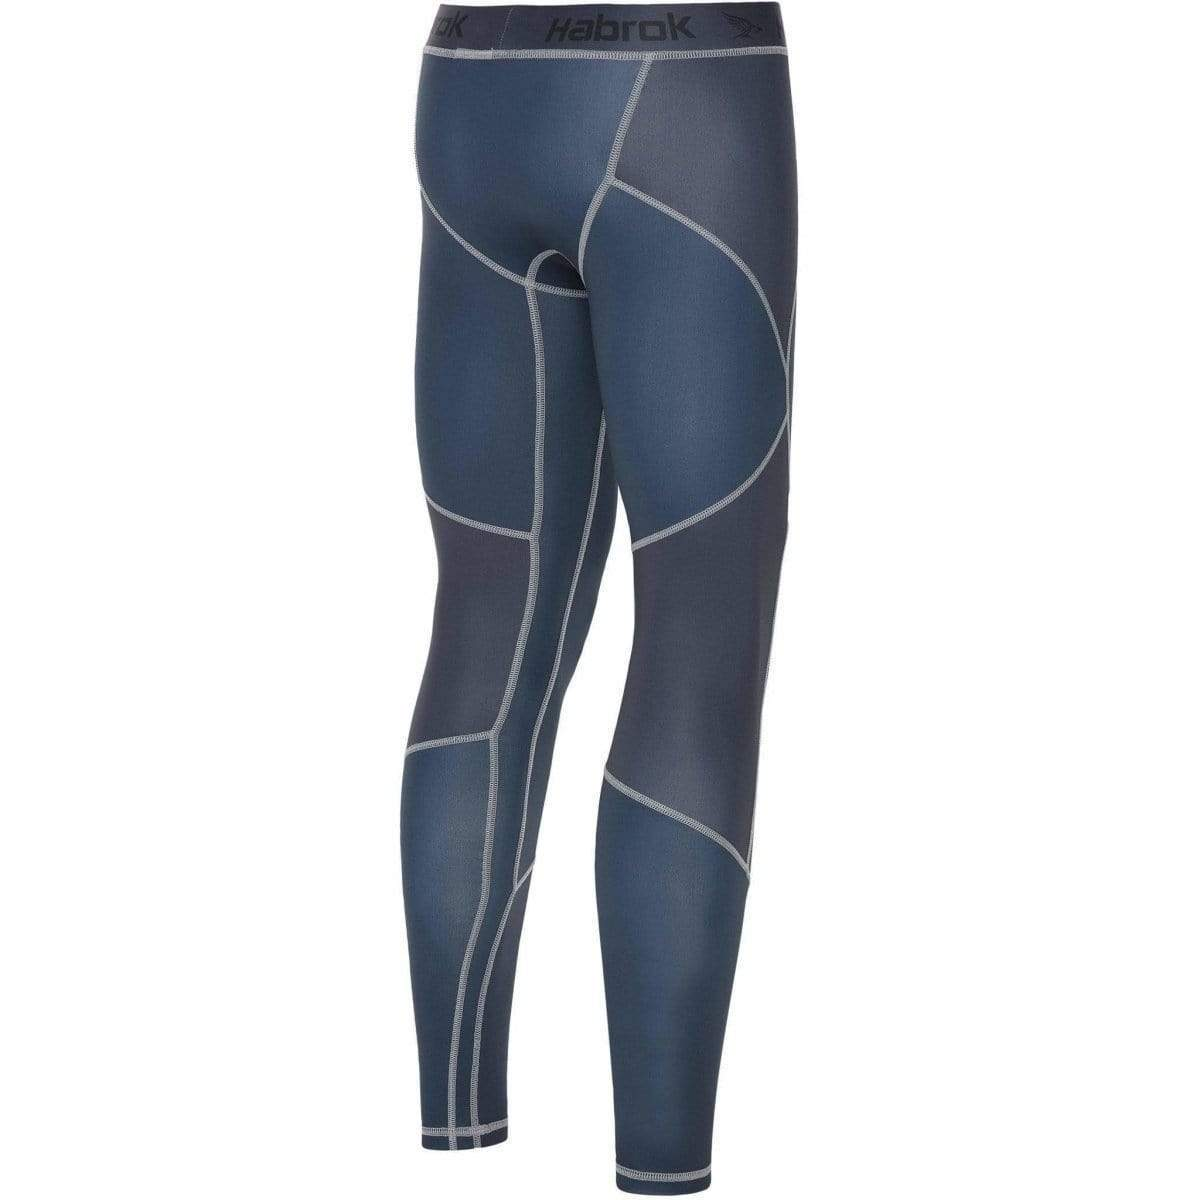 Habrok Spats S / BLUE Pugnator | Compression Pants | Men